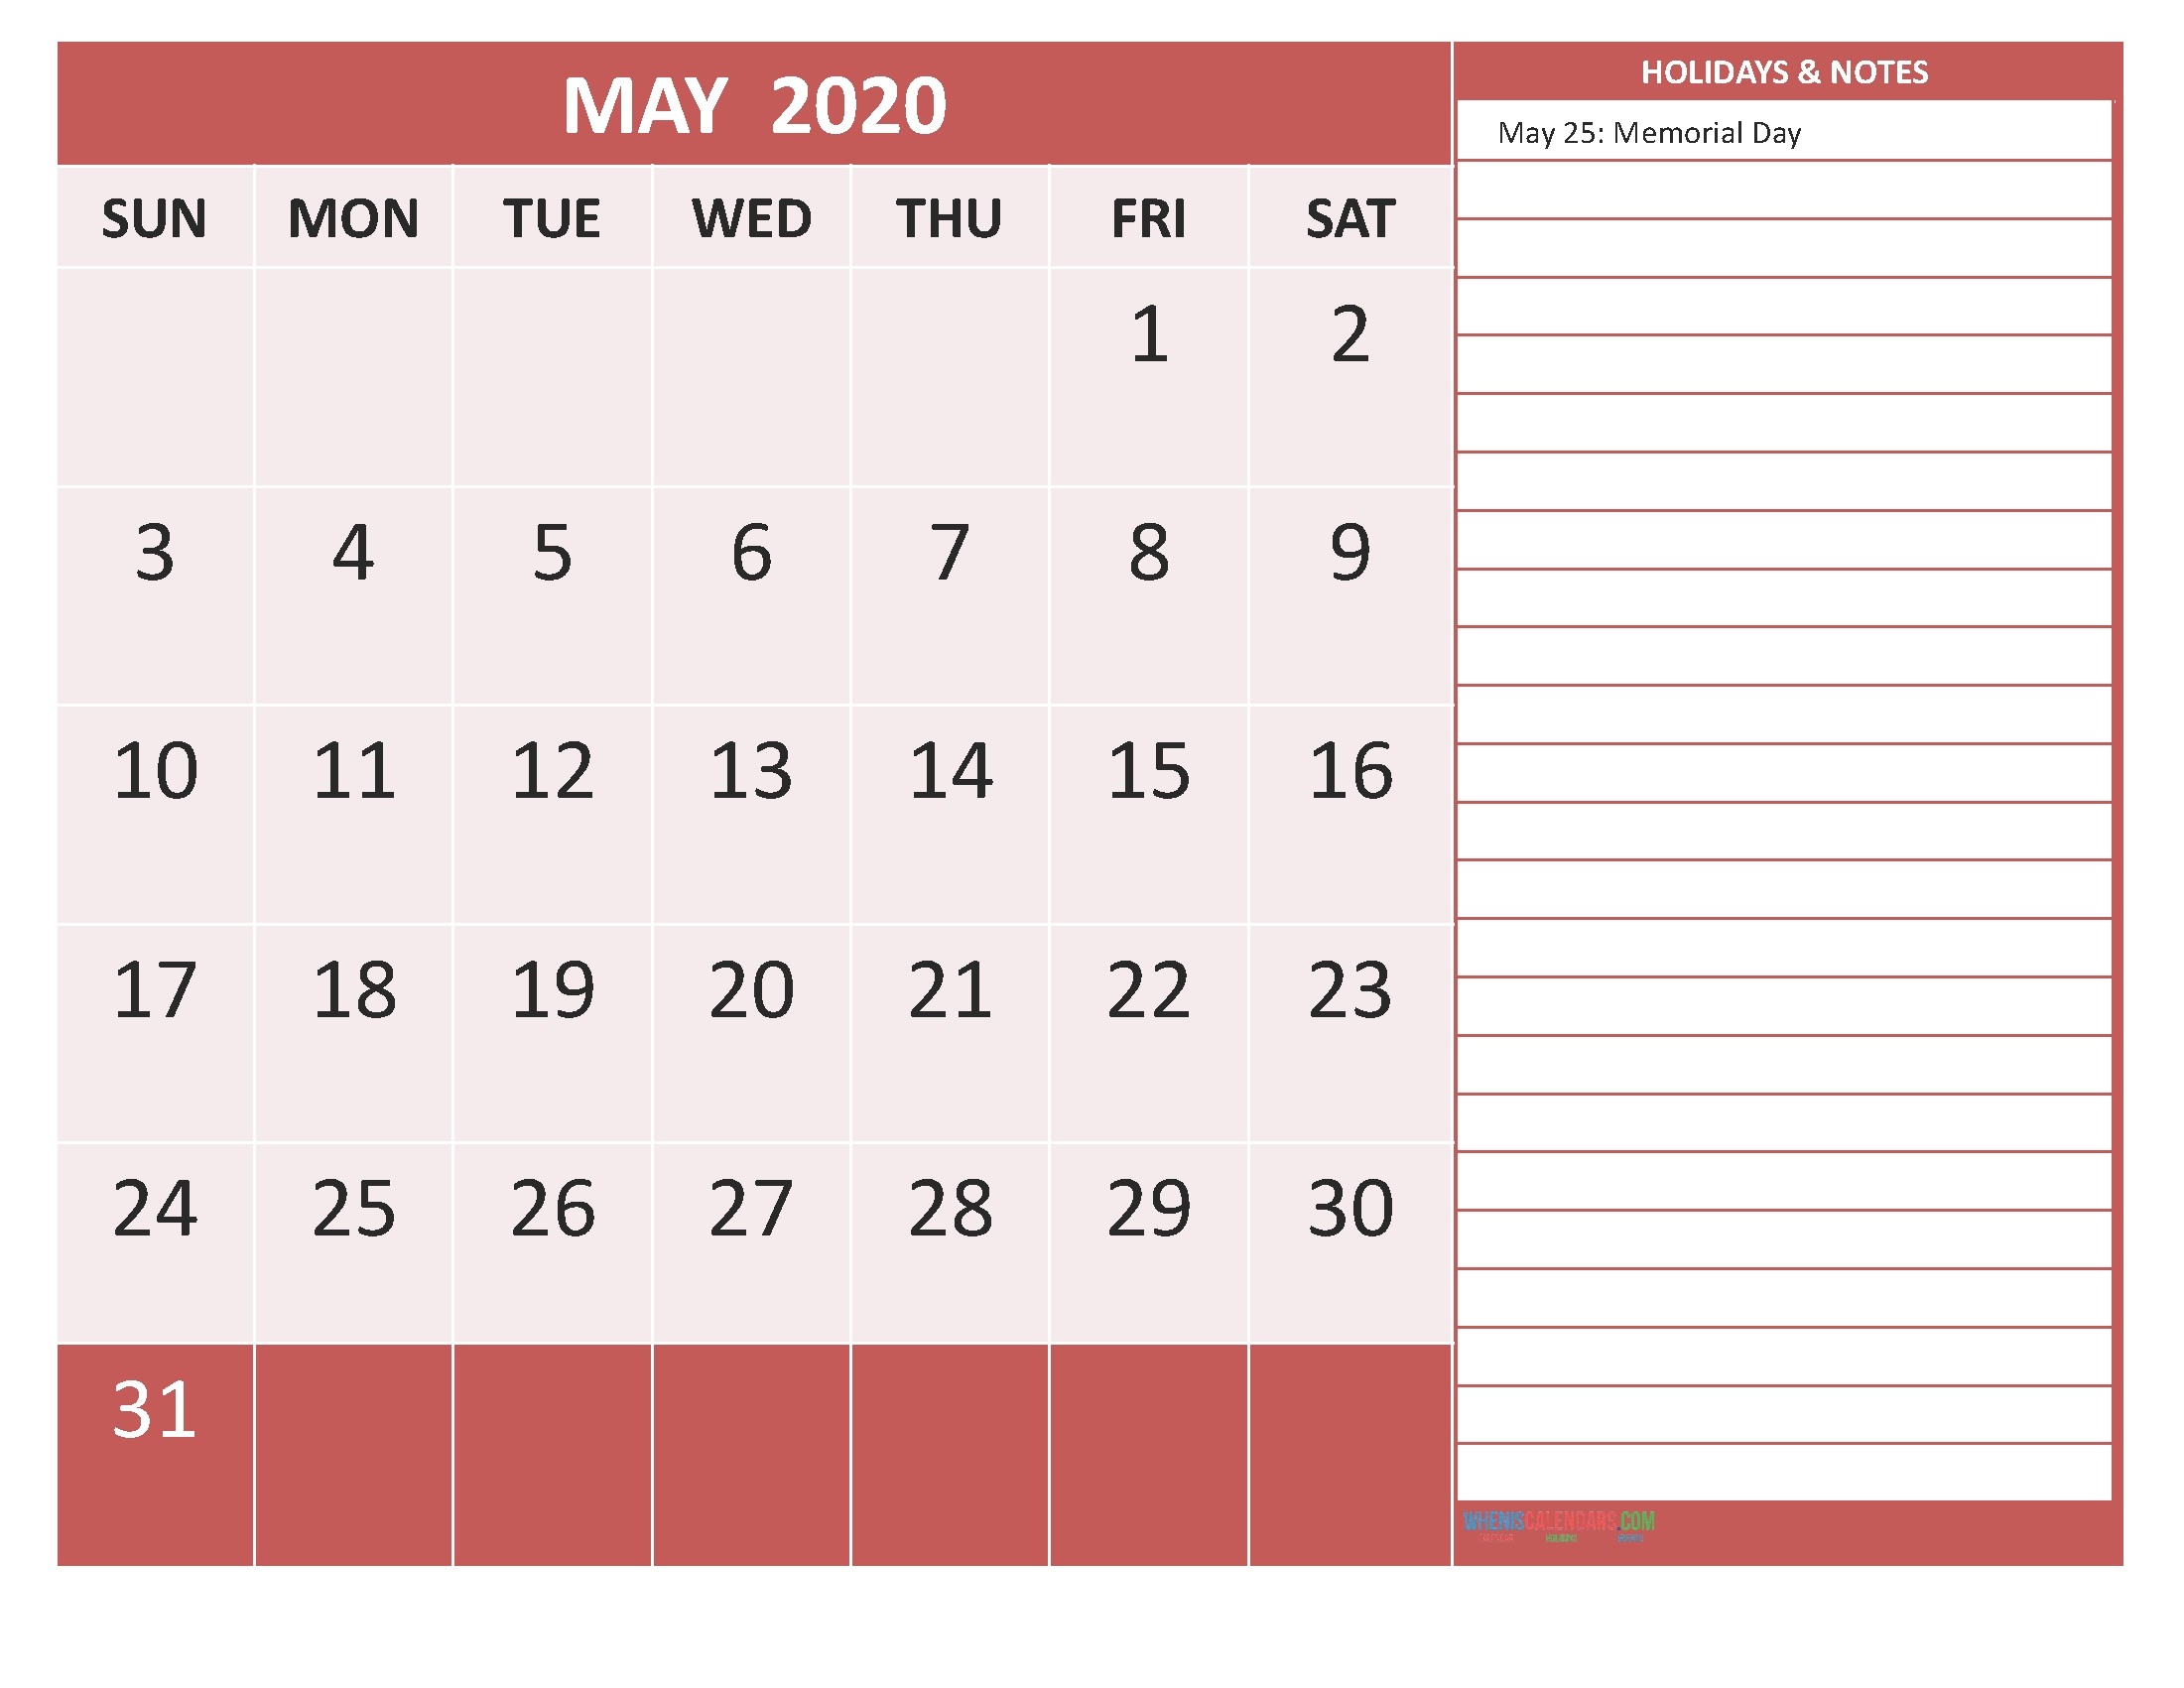 May 2020 Calendar With Holidays Free Printable By Word